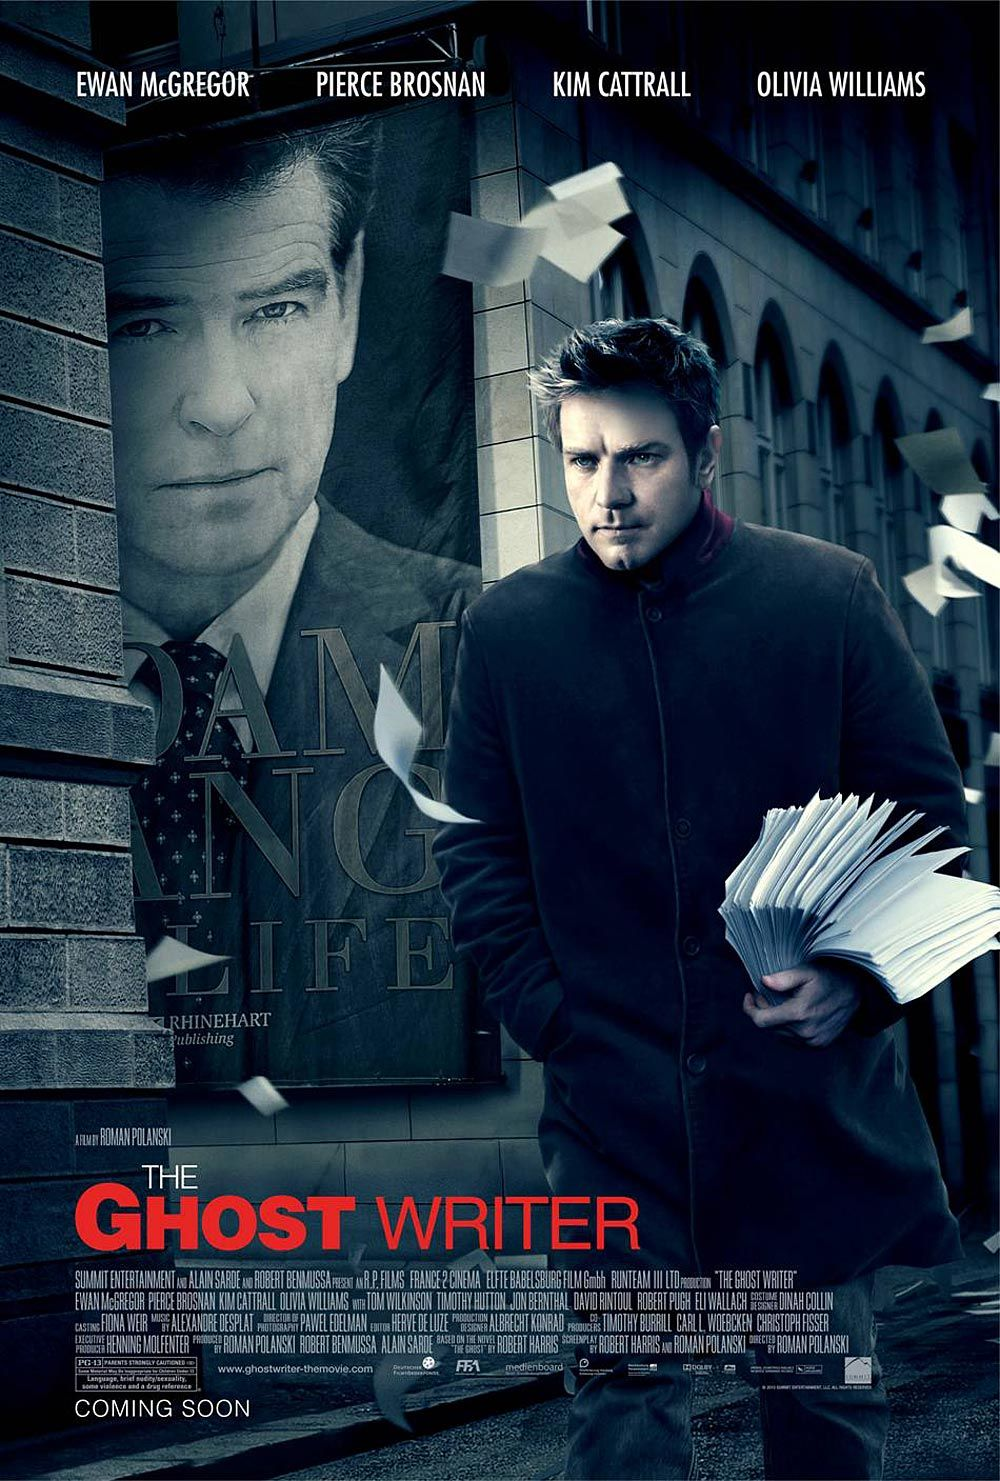 The Ghost Writer by Roman Polanski